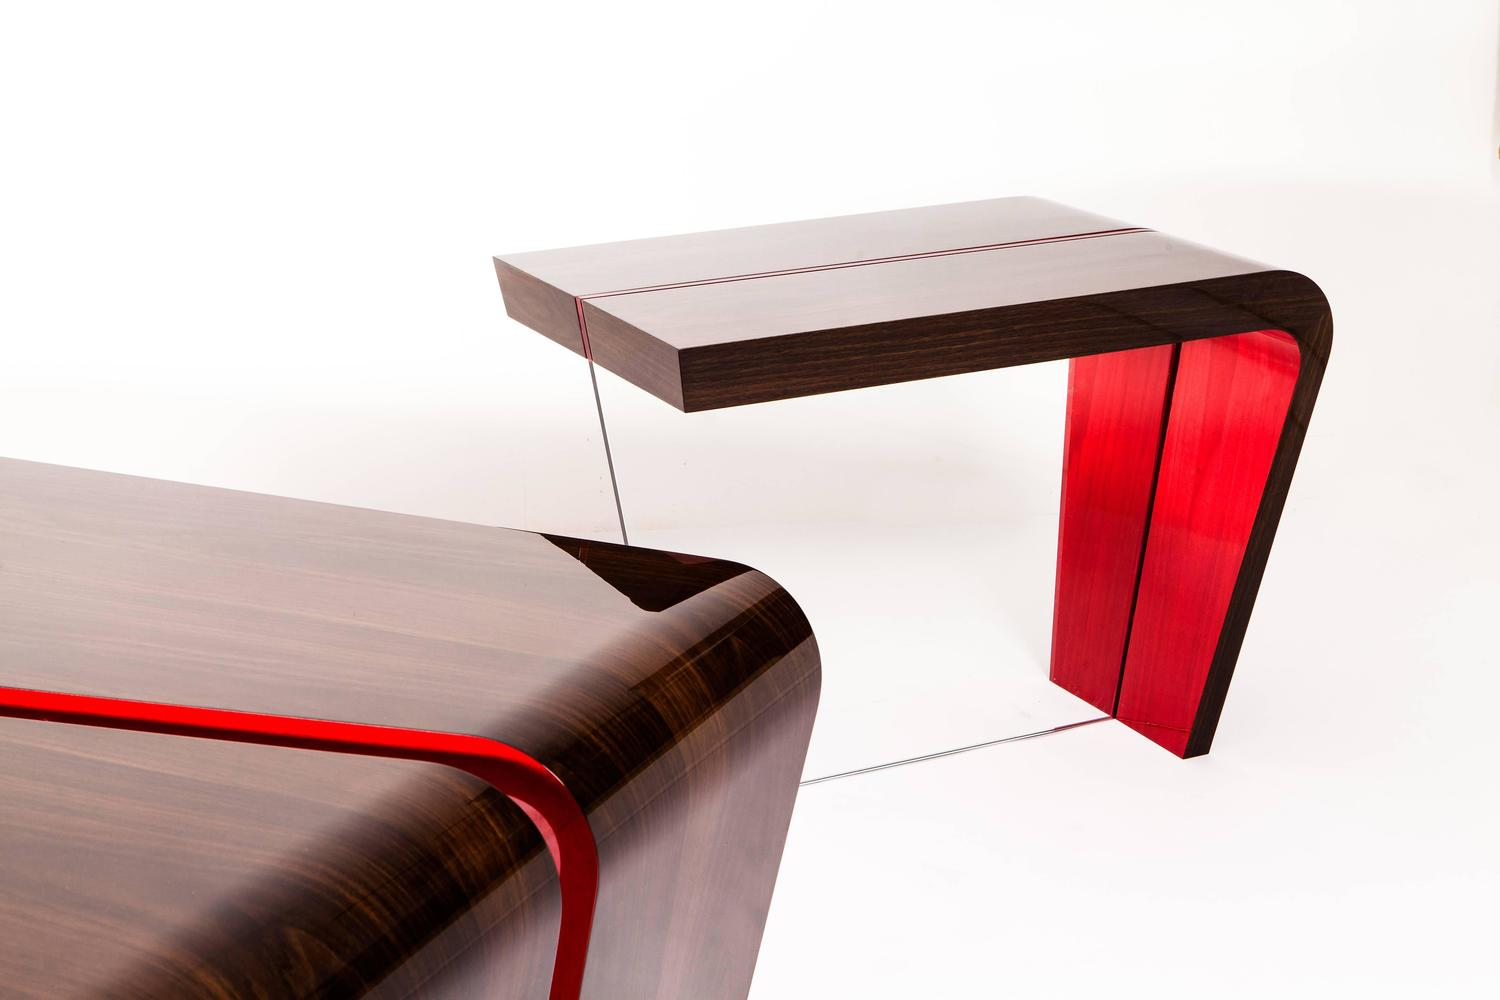 Contemporary Red and Lacquered Walnut End Table For Sale at 1stdibs